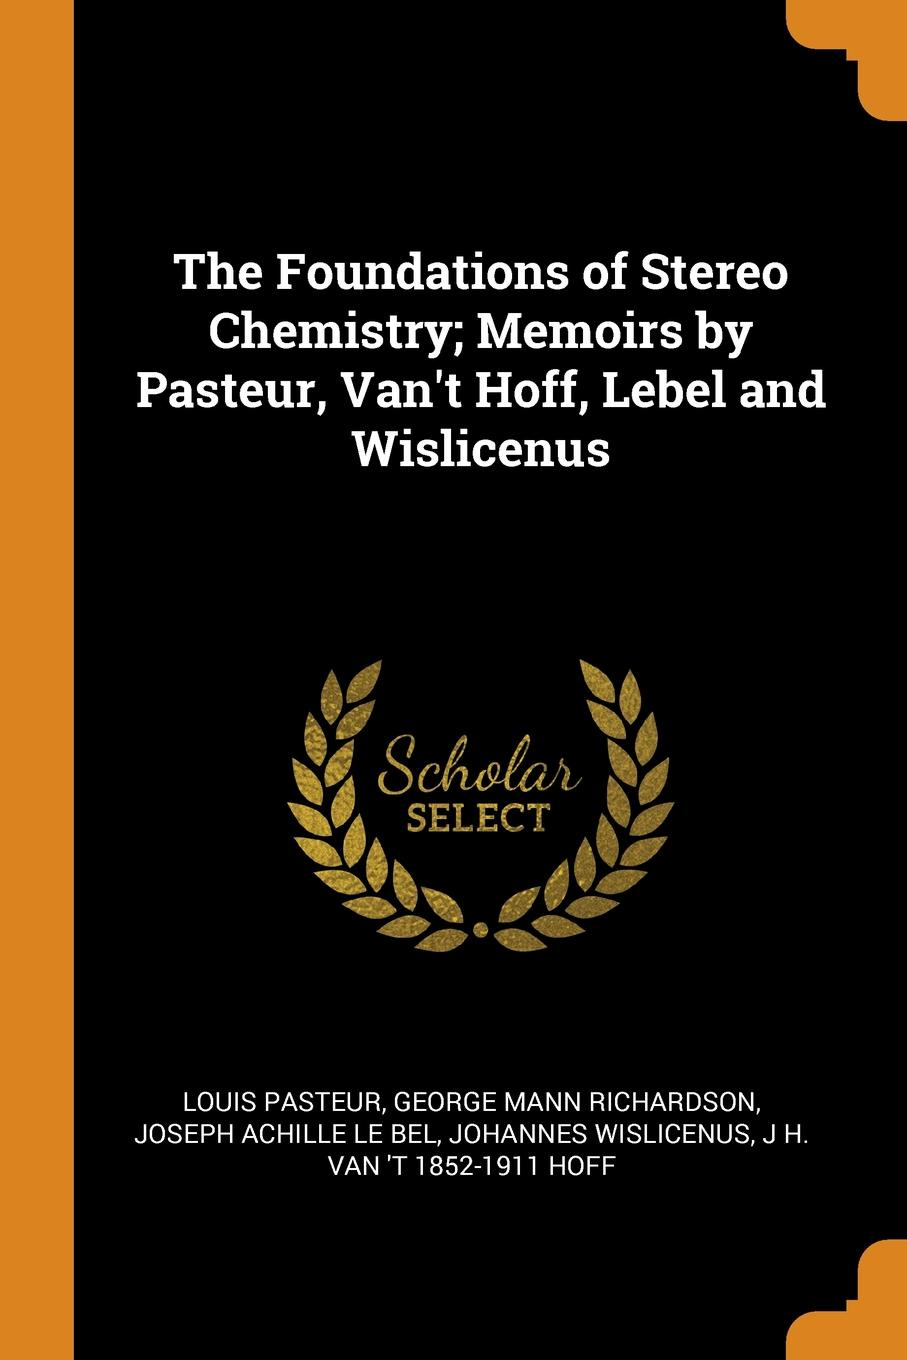 The Foundations of Stereo Chemistry; Memoirs by Pasteur, Van.t Hoff, Lebel and Wislicenus